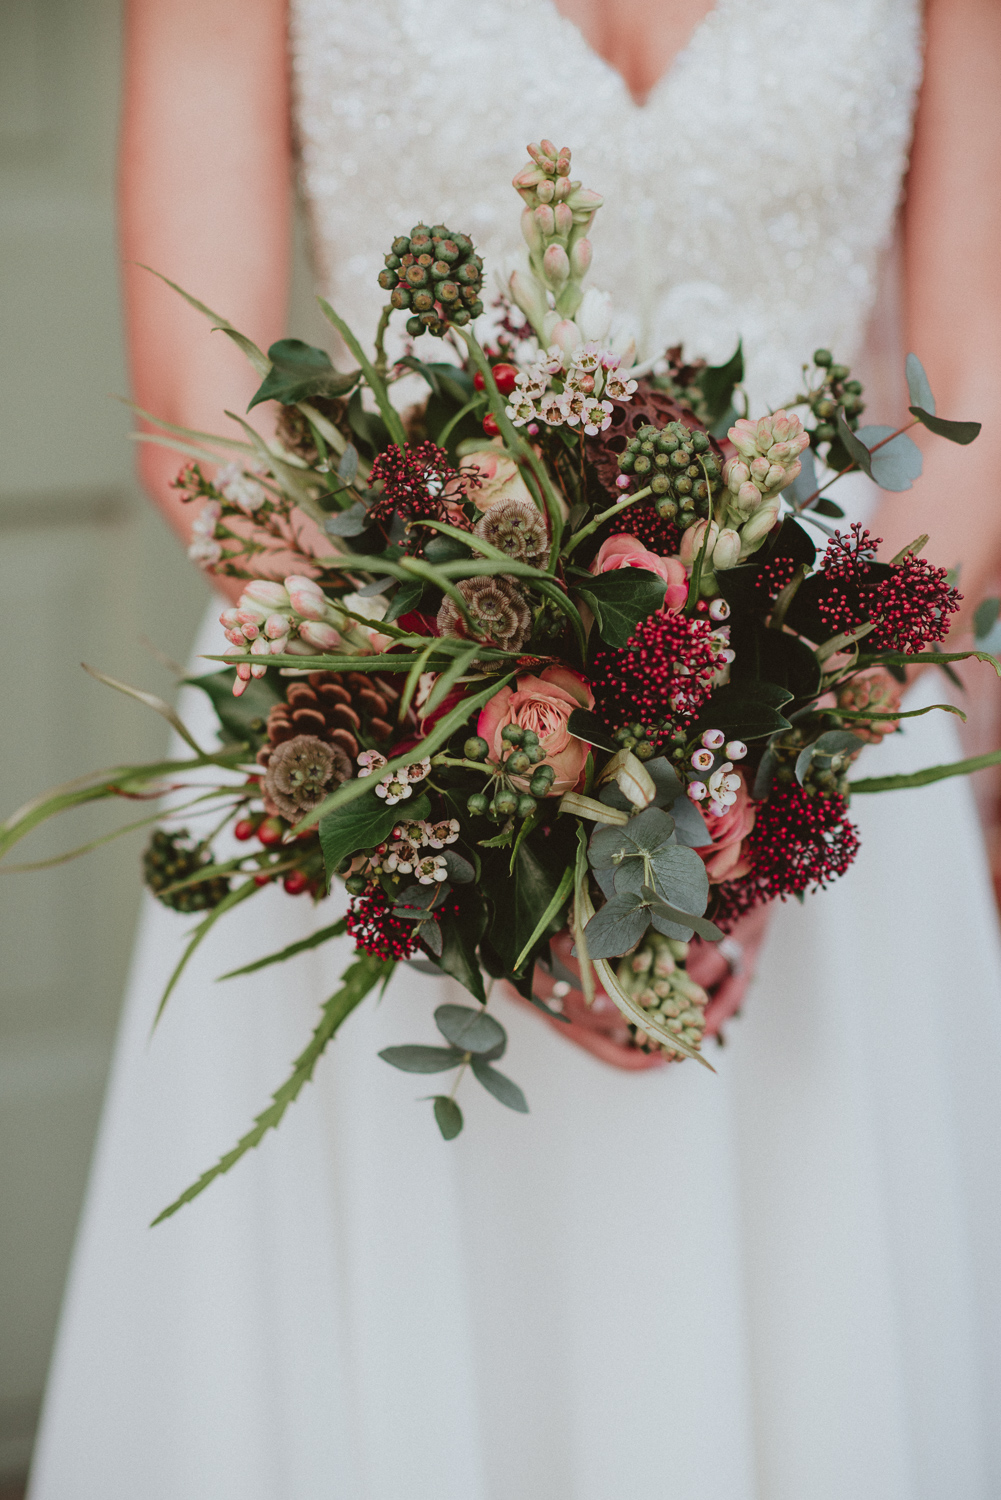 Winter wedding bridal bouquet, nude rose. seed heads, pine cone, rustic flowers